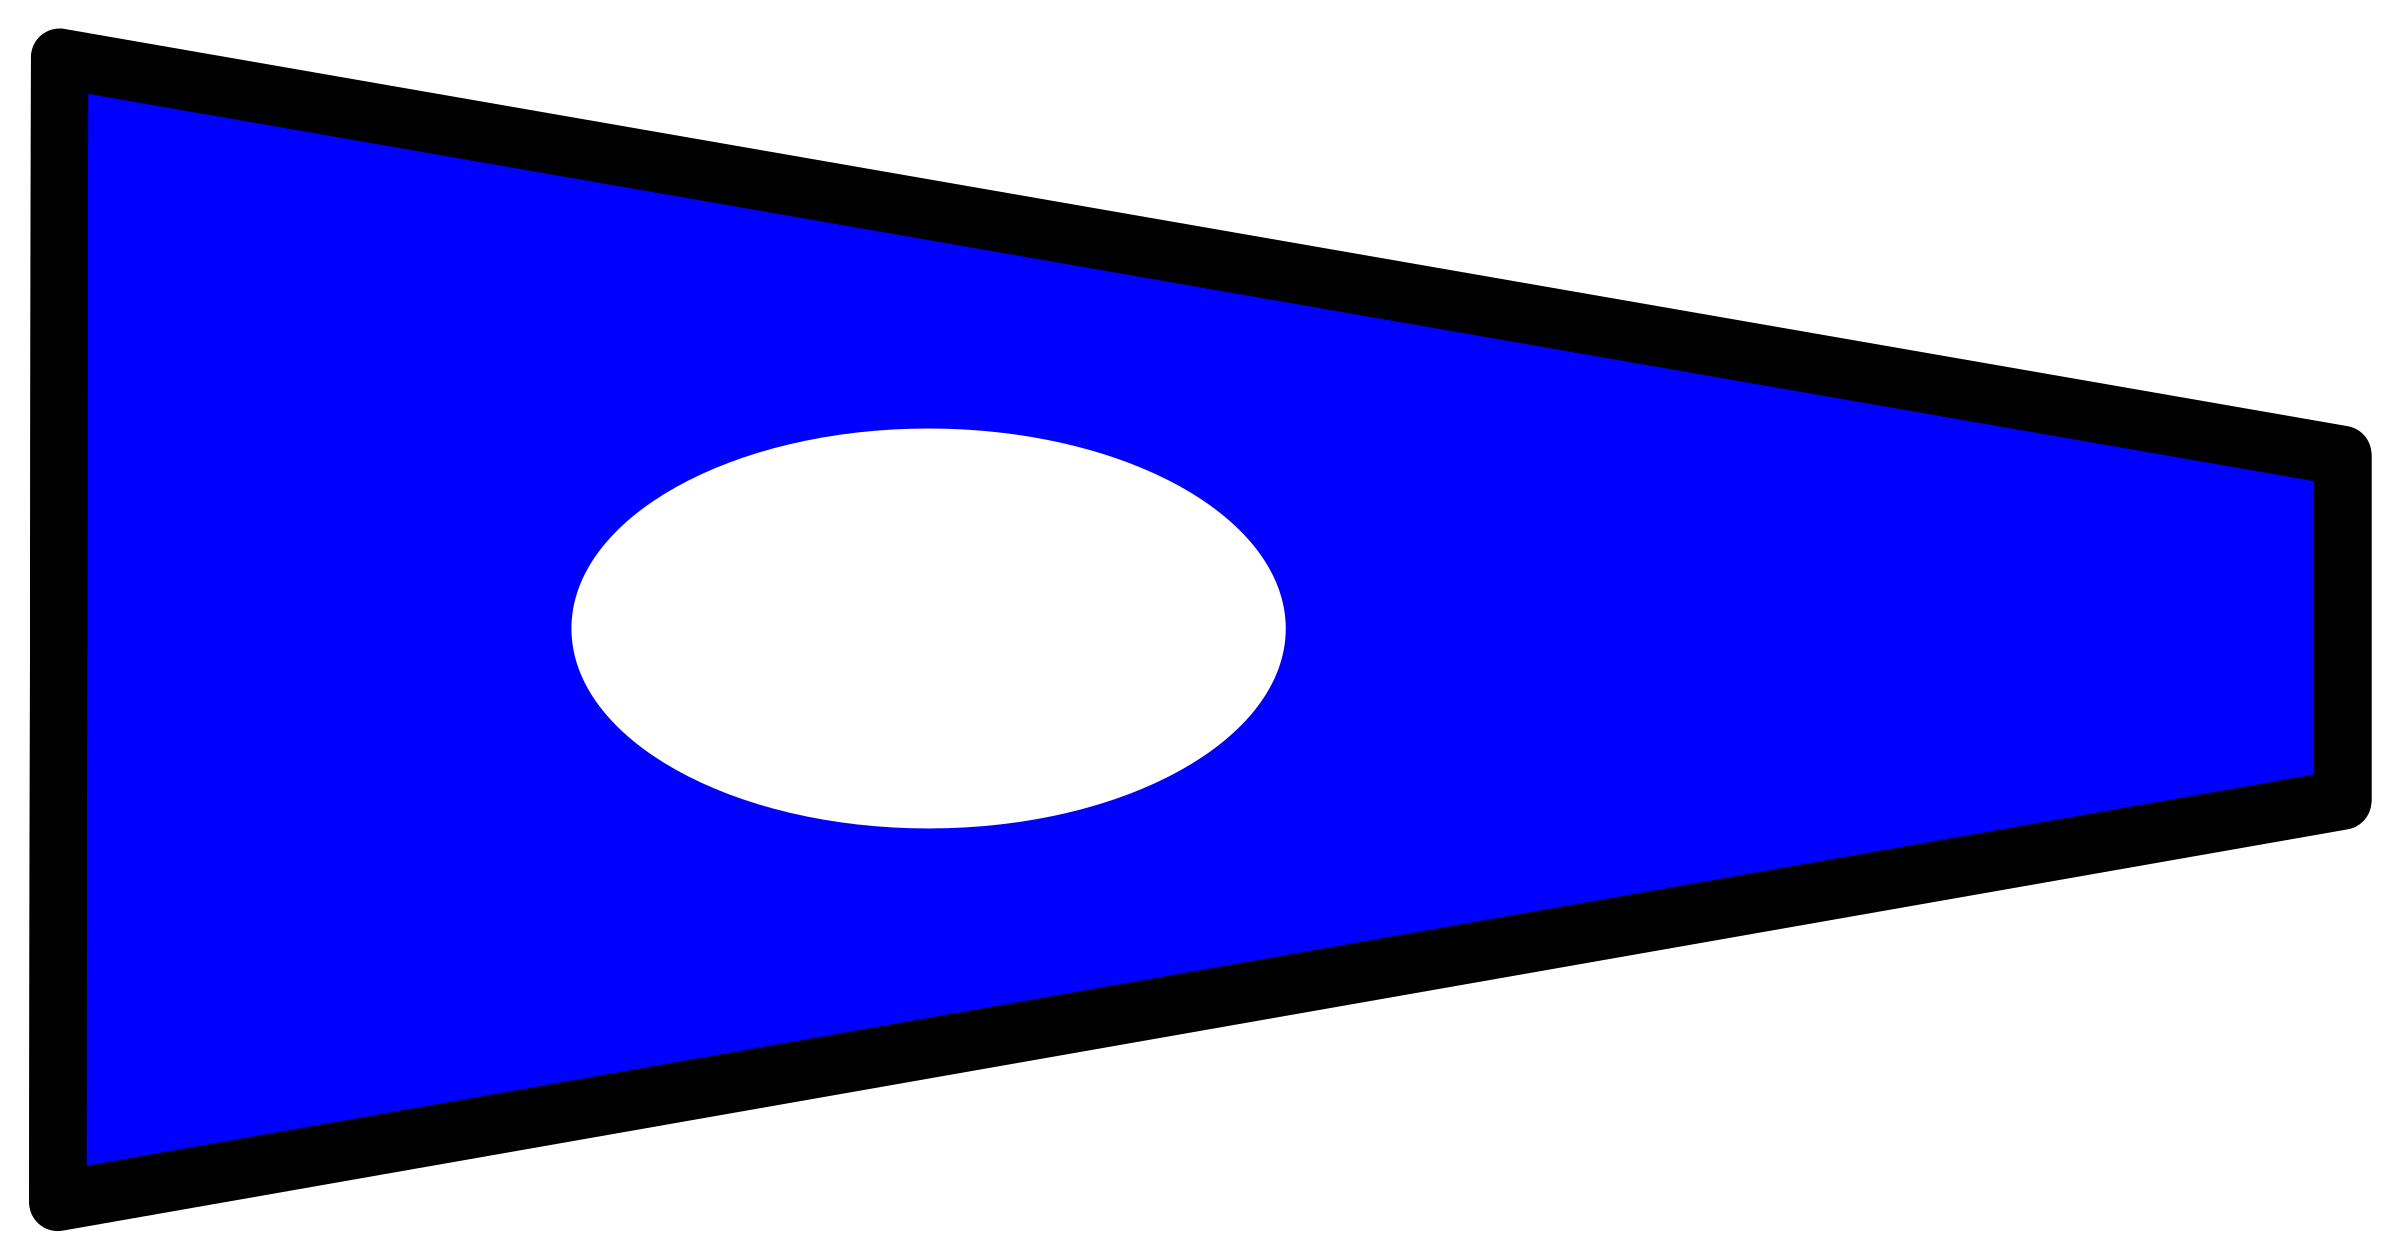 signalflag 2 by Anonymous